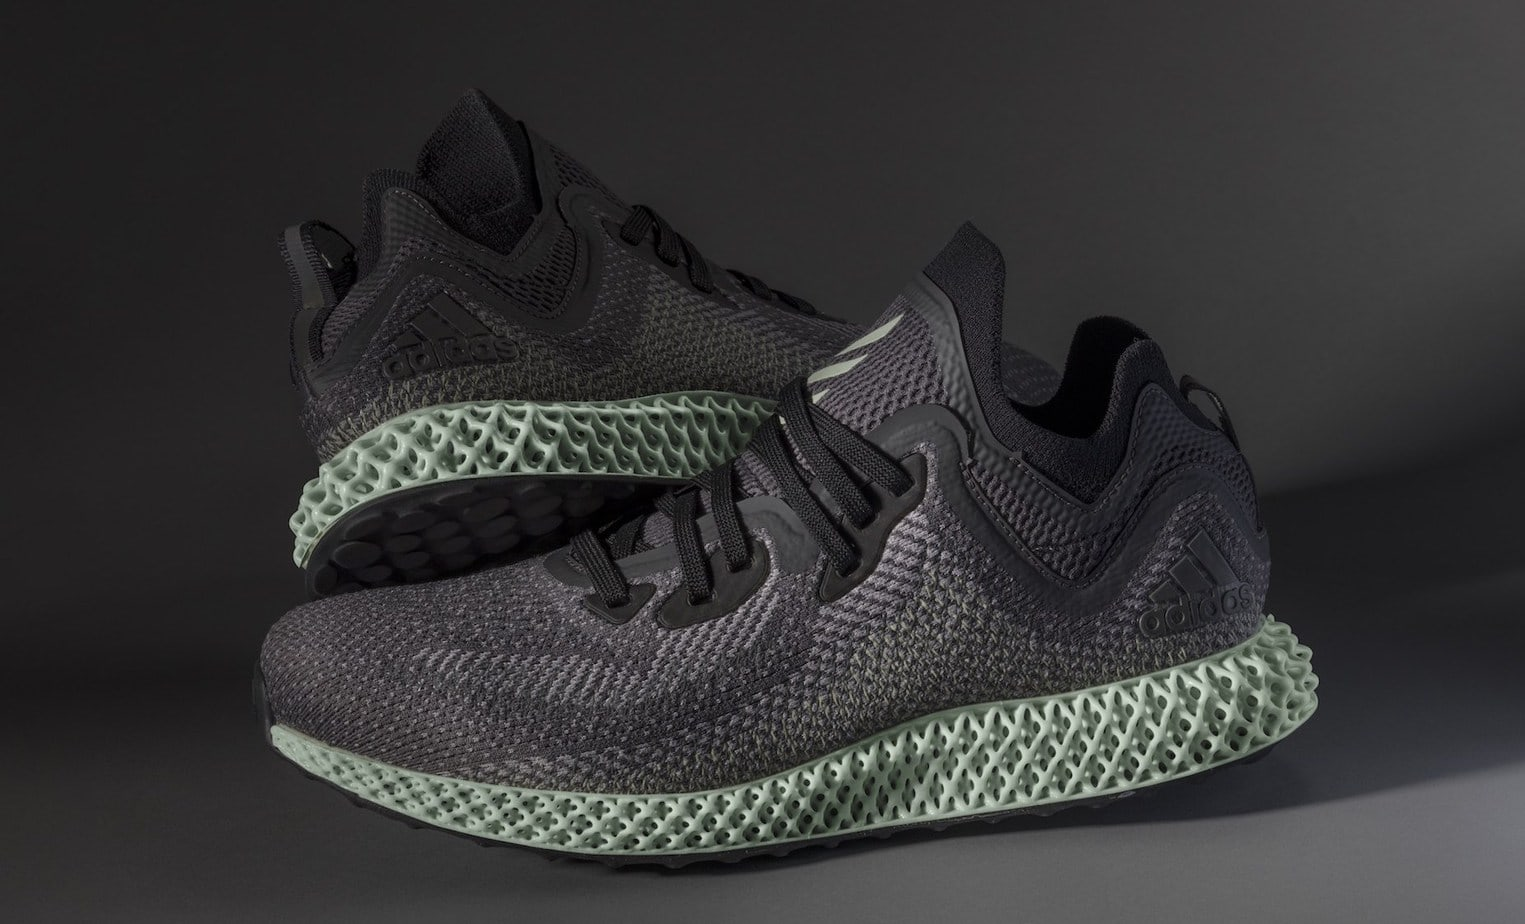 free shipping 69330 5ab3d adidas AlphaEdge 4D LTD Release Date  February 17th, 2018. Price   300.  Colors  Ash Green, Aero Grey, Core Black